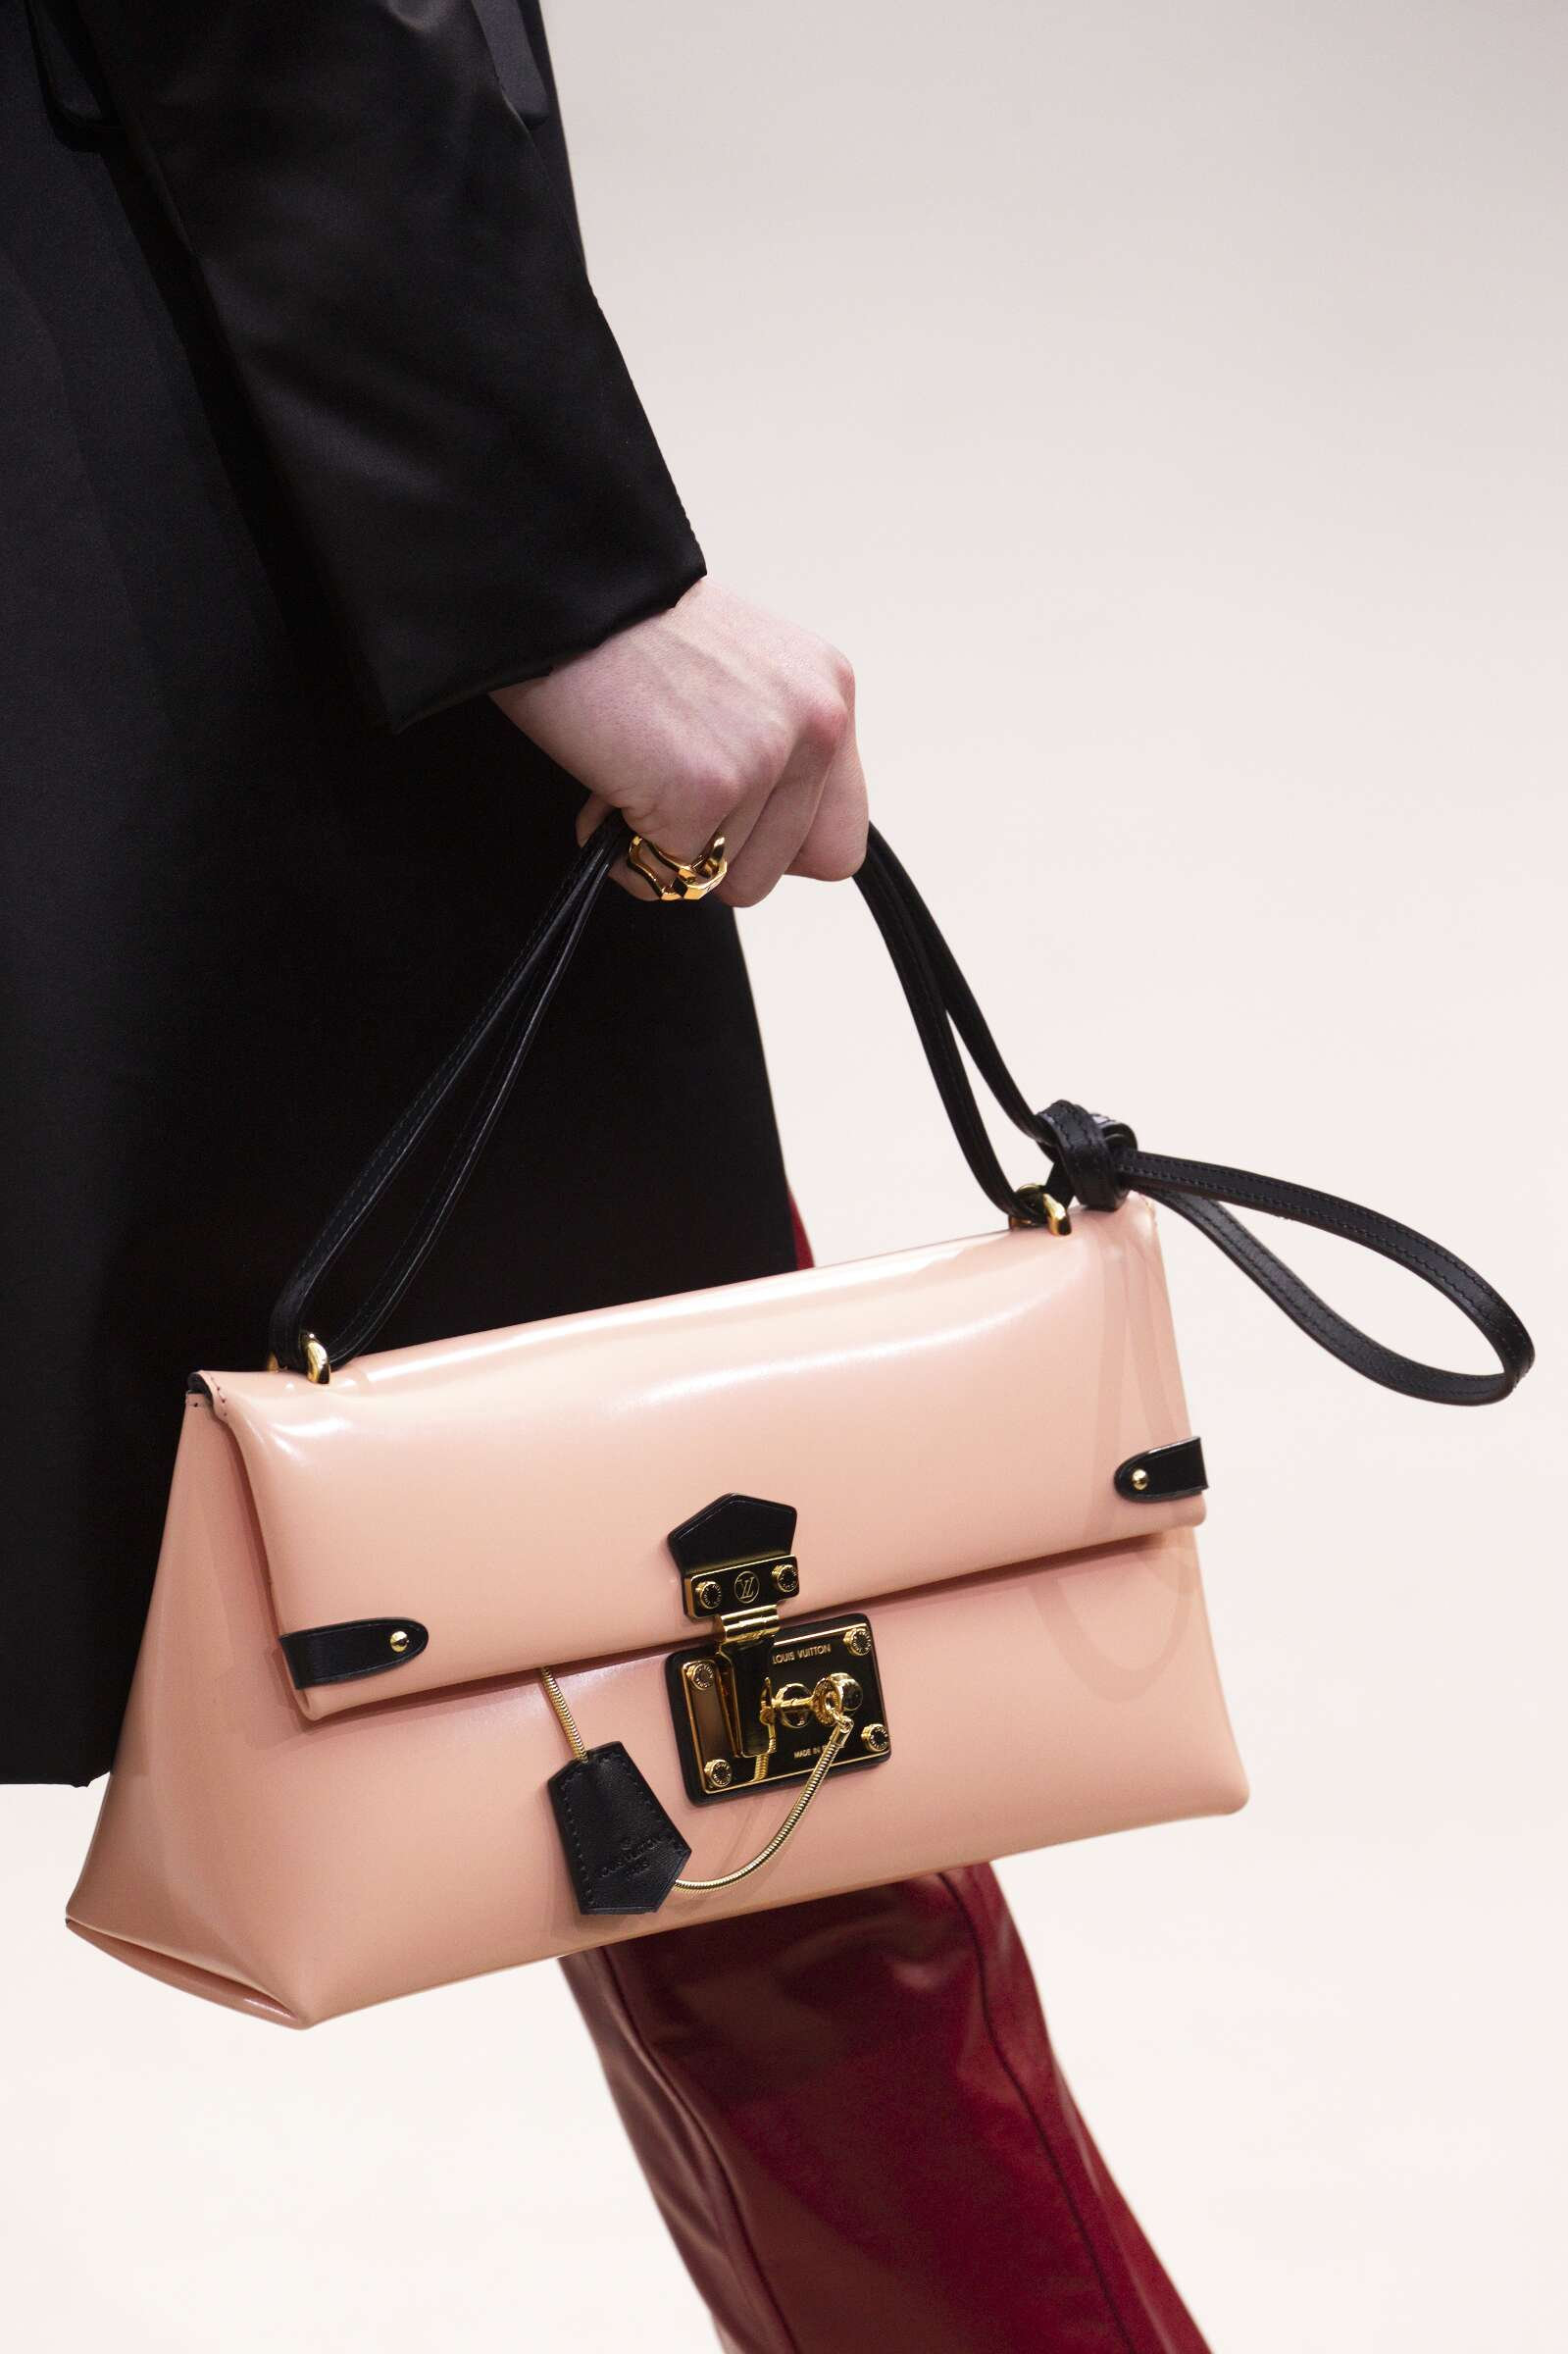 2015 Fall Fashion Woman Louis Vuitton Bag Details Collection